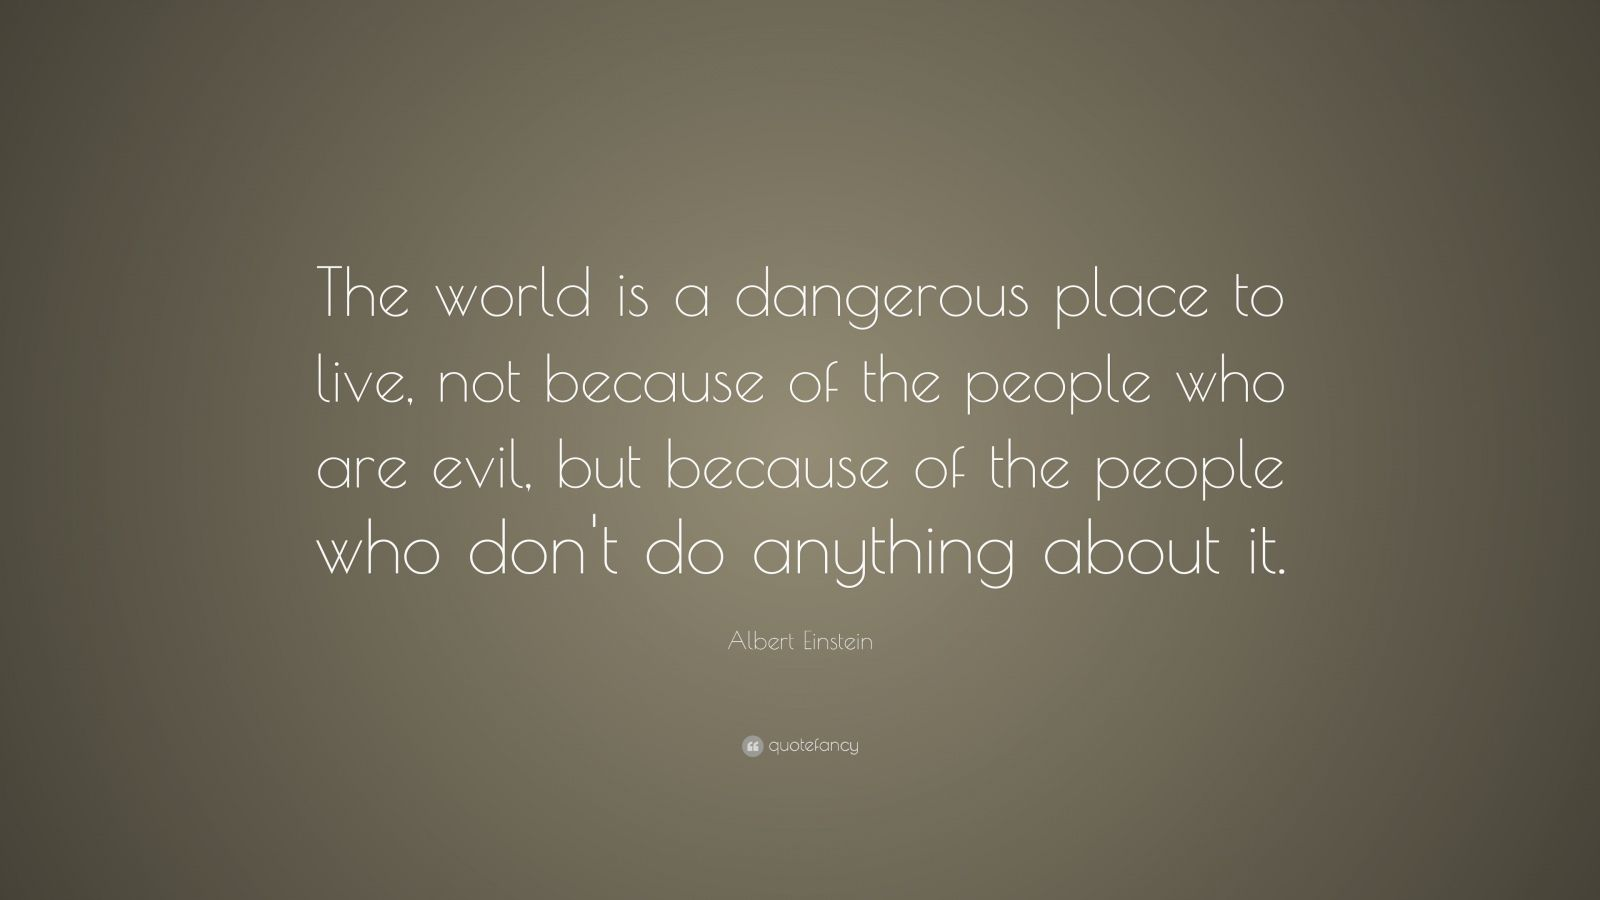 Albert Einstein Quotes About the World Is a Dangerous Place